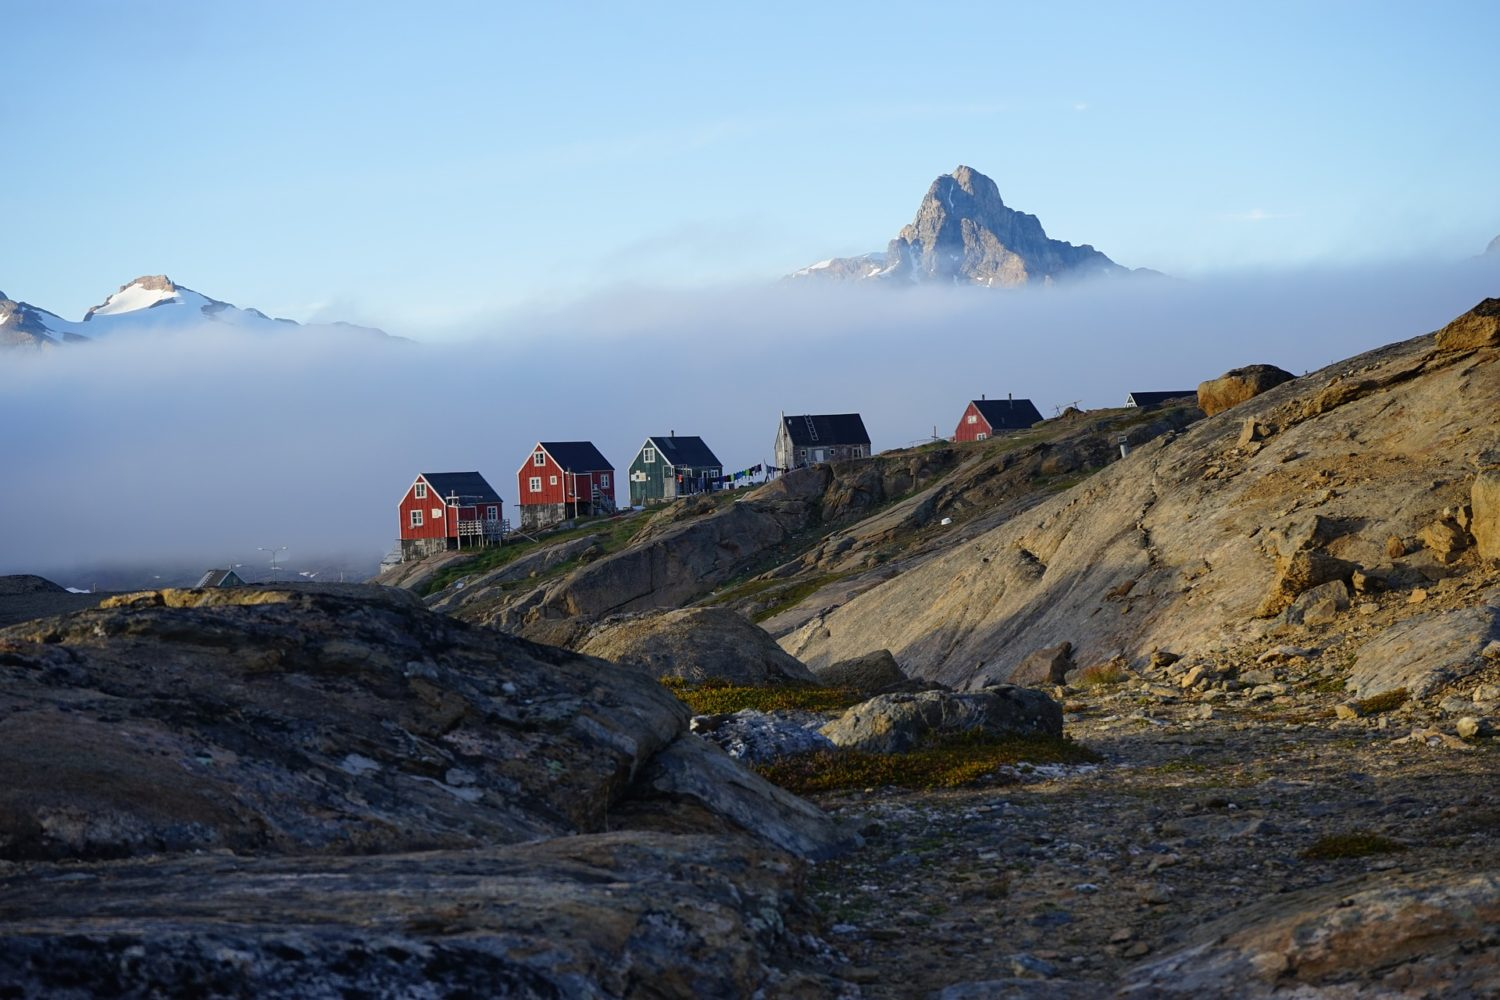 The colorful houses in Tasiilaq, Greenland amidst the rugged landscape.